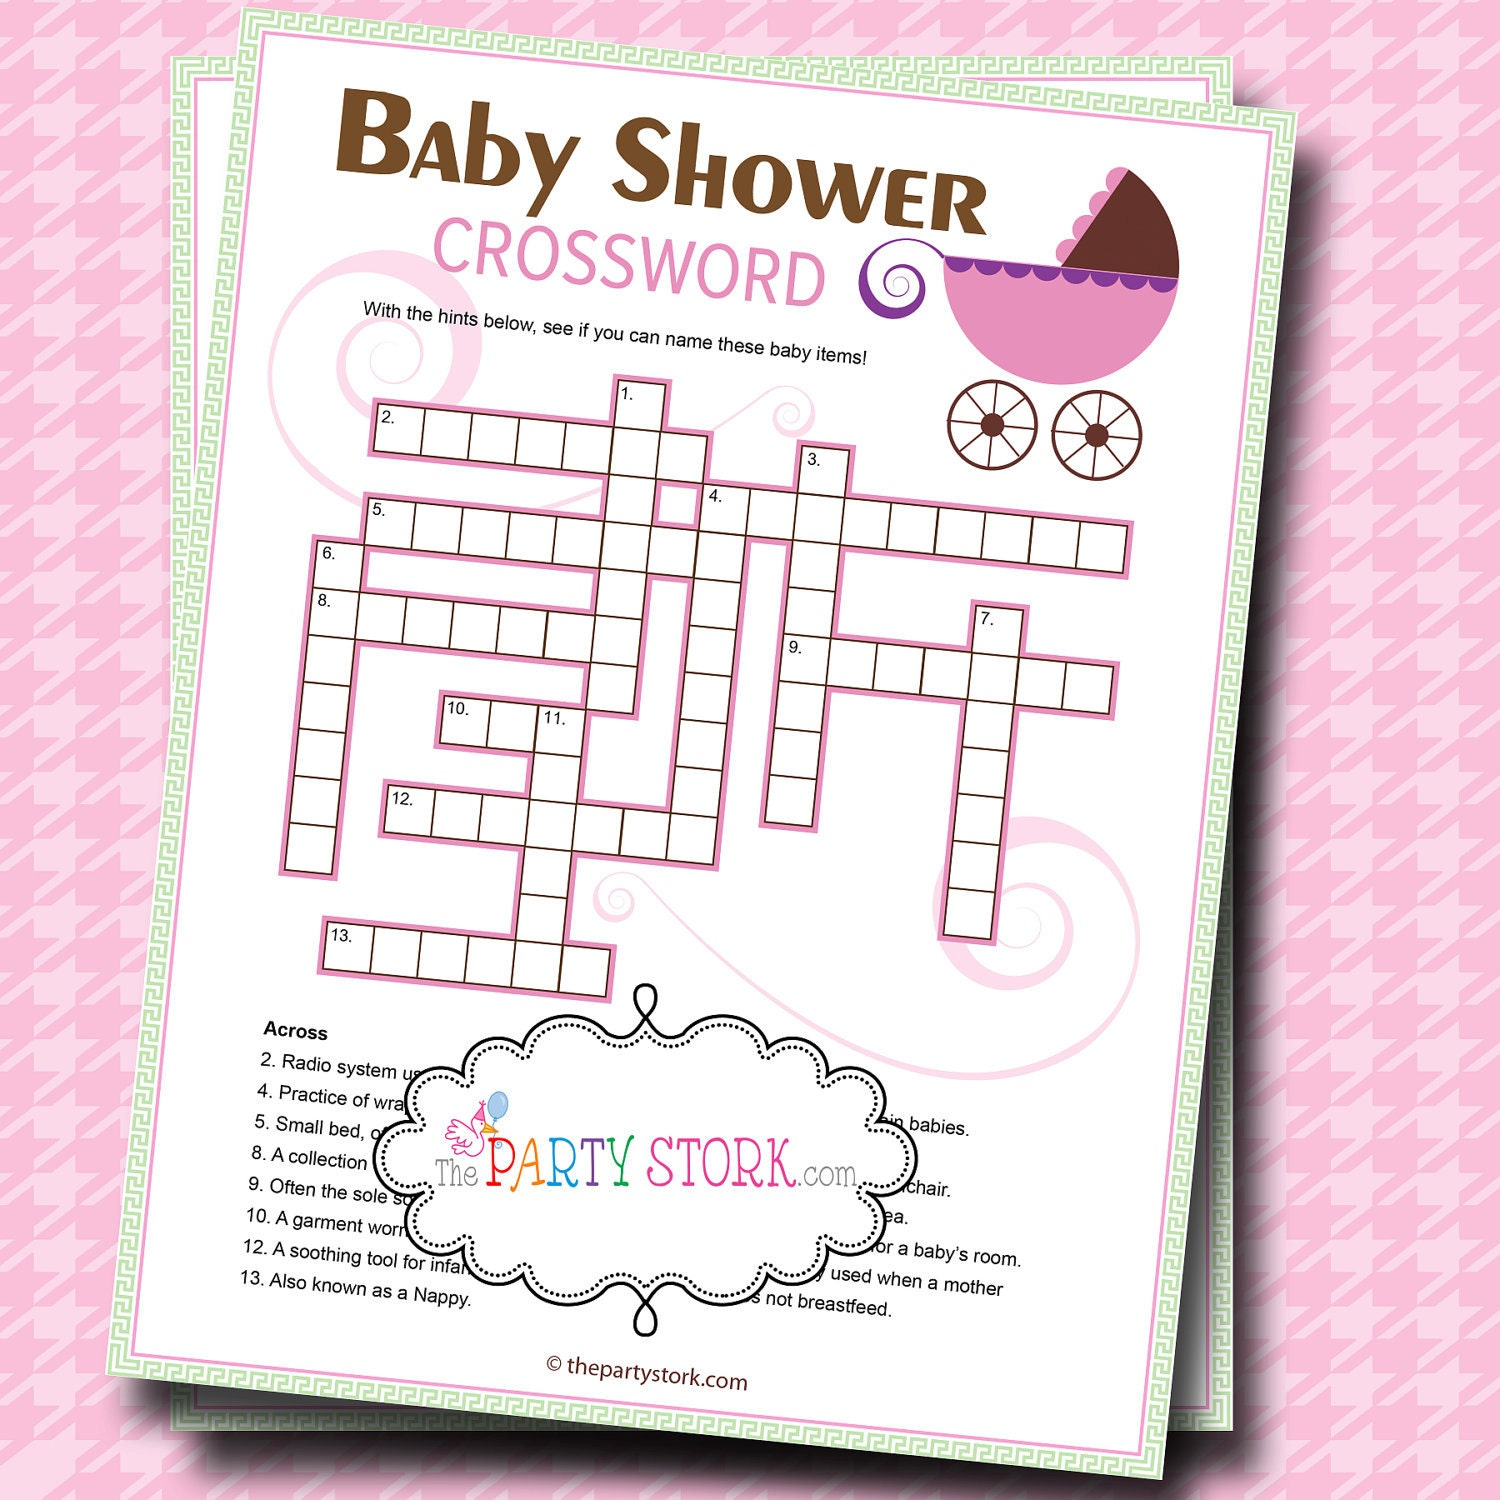 Baby shower games crossword puzzle game printable stroller for Bathroom designs games